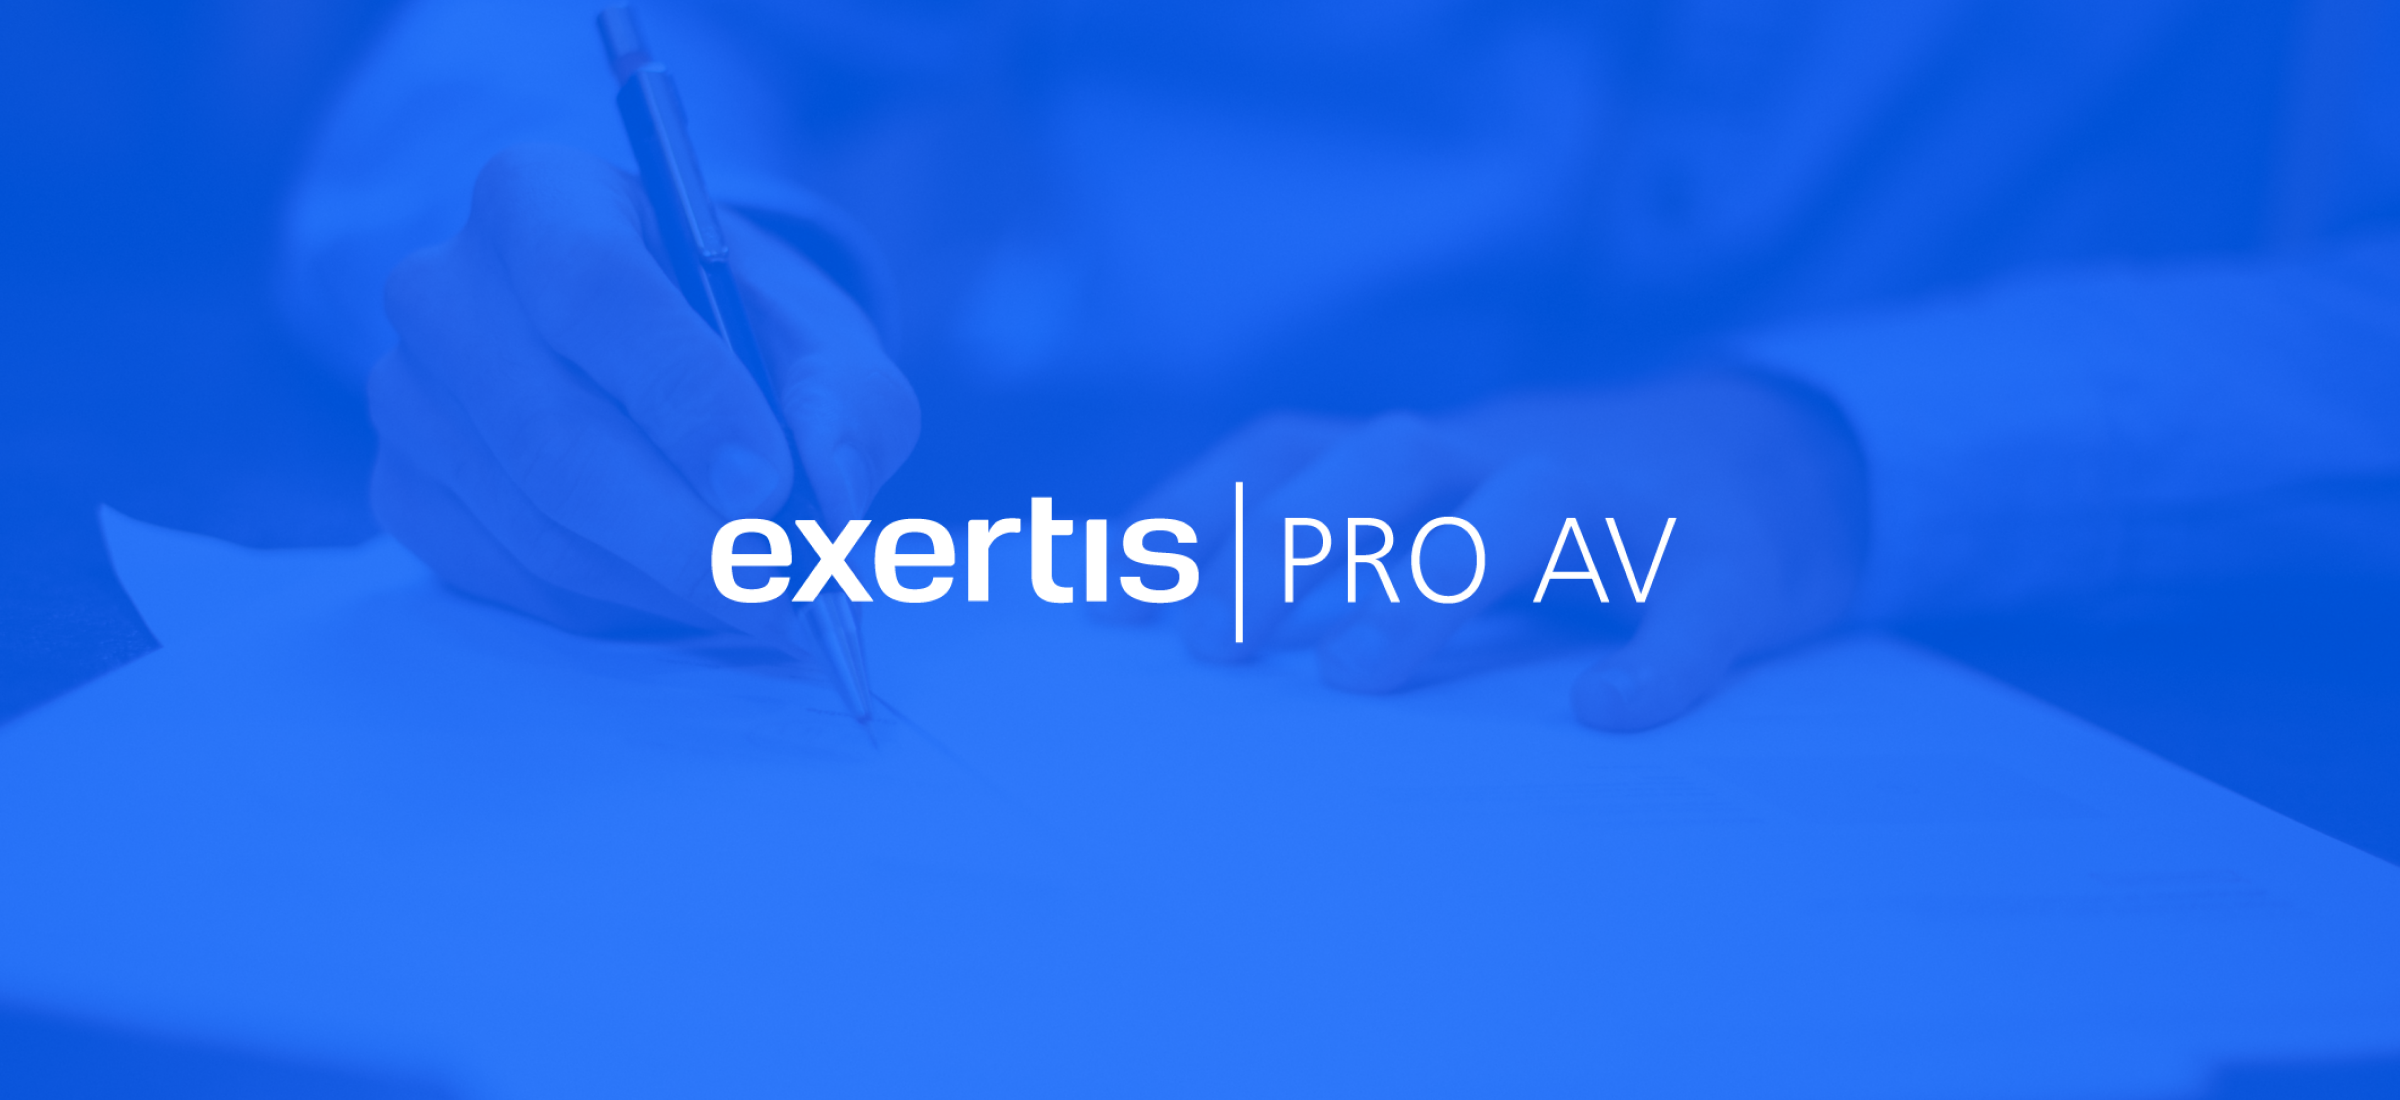 Exertis ProAV Australia Appointed to Distribute Airtame Wireless Screen Sharing and Collaboration Platform